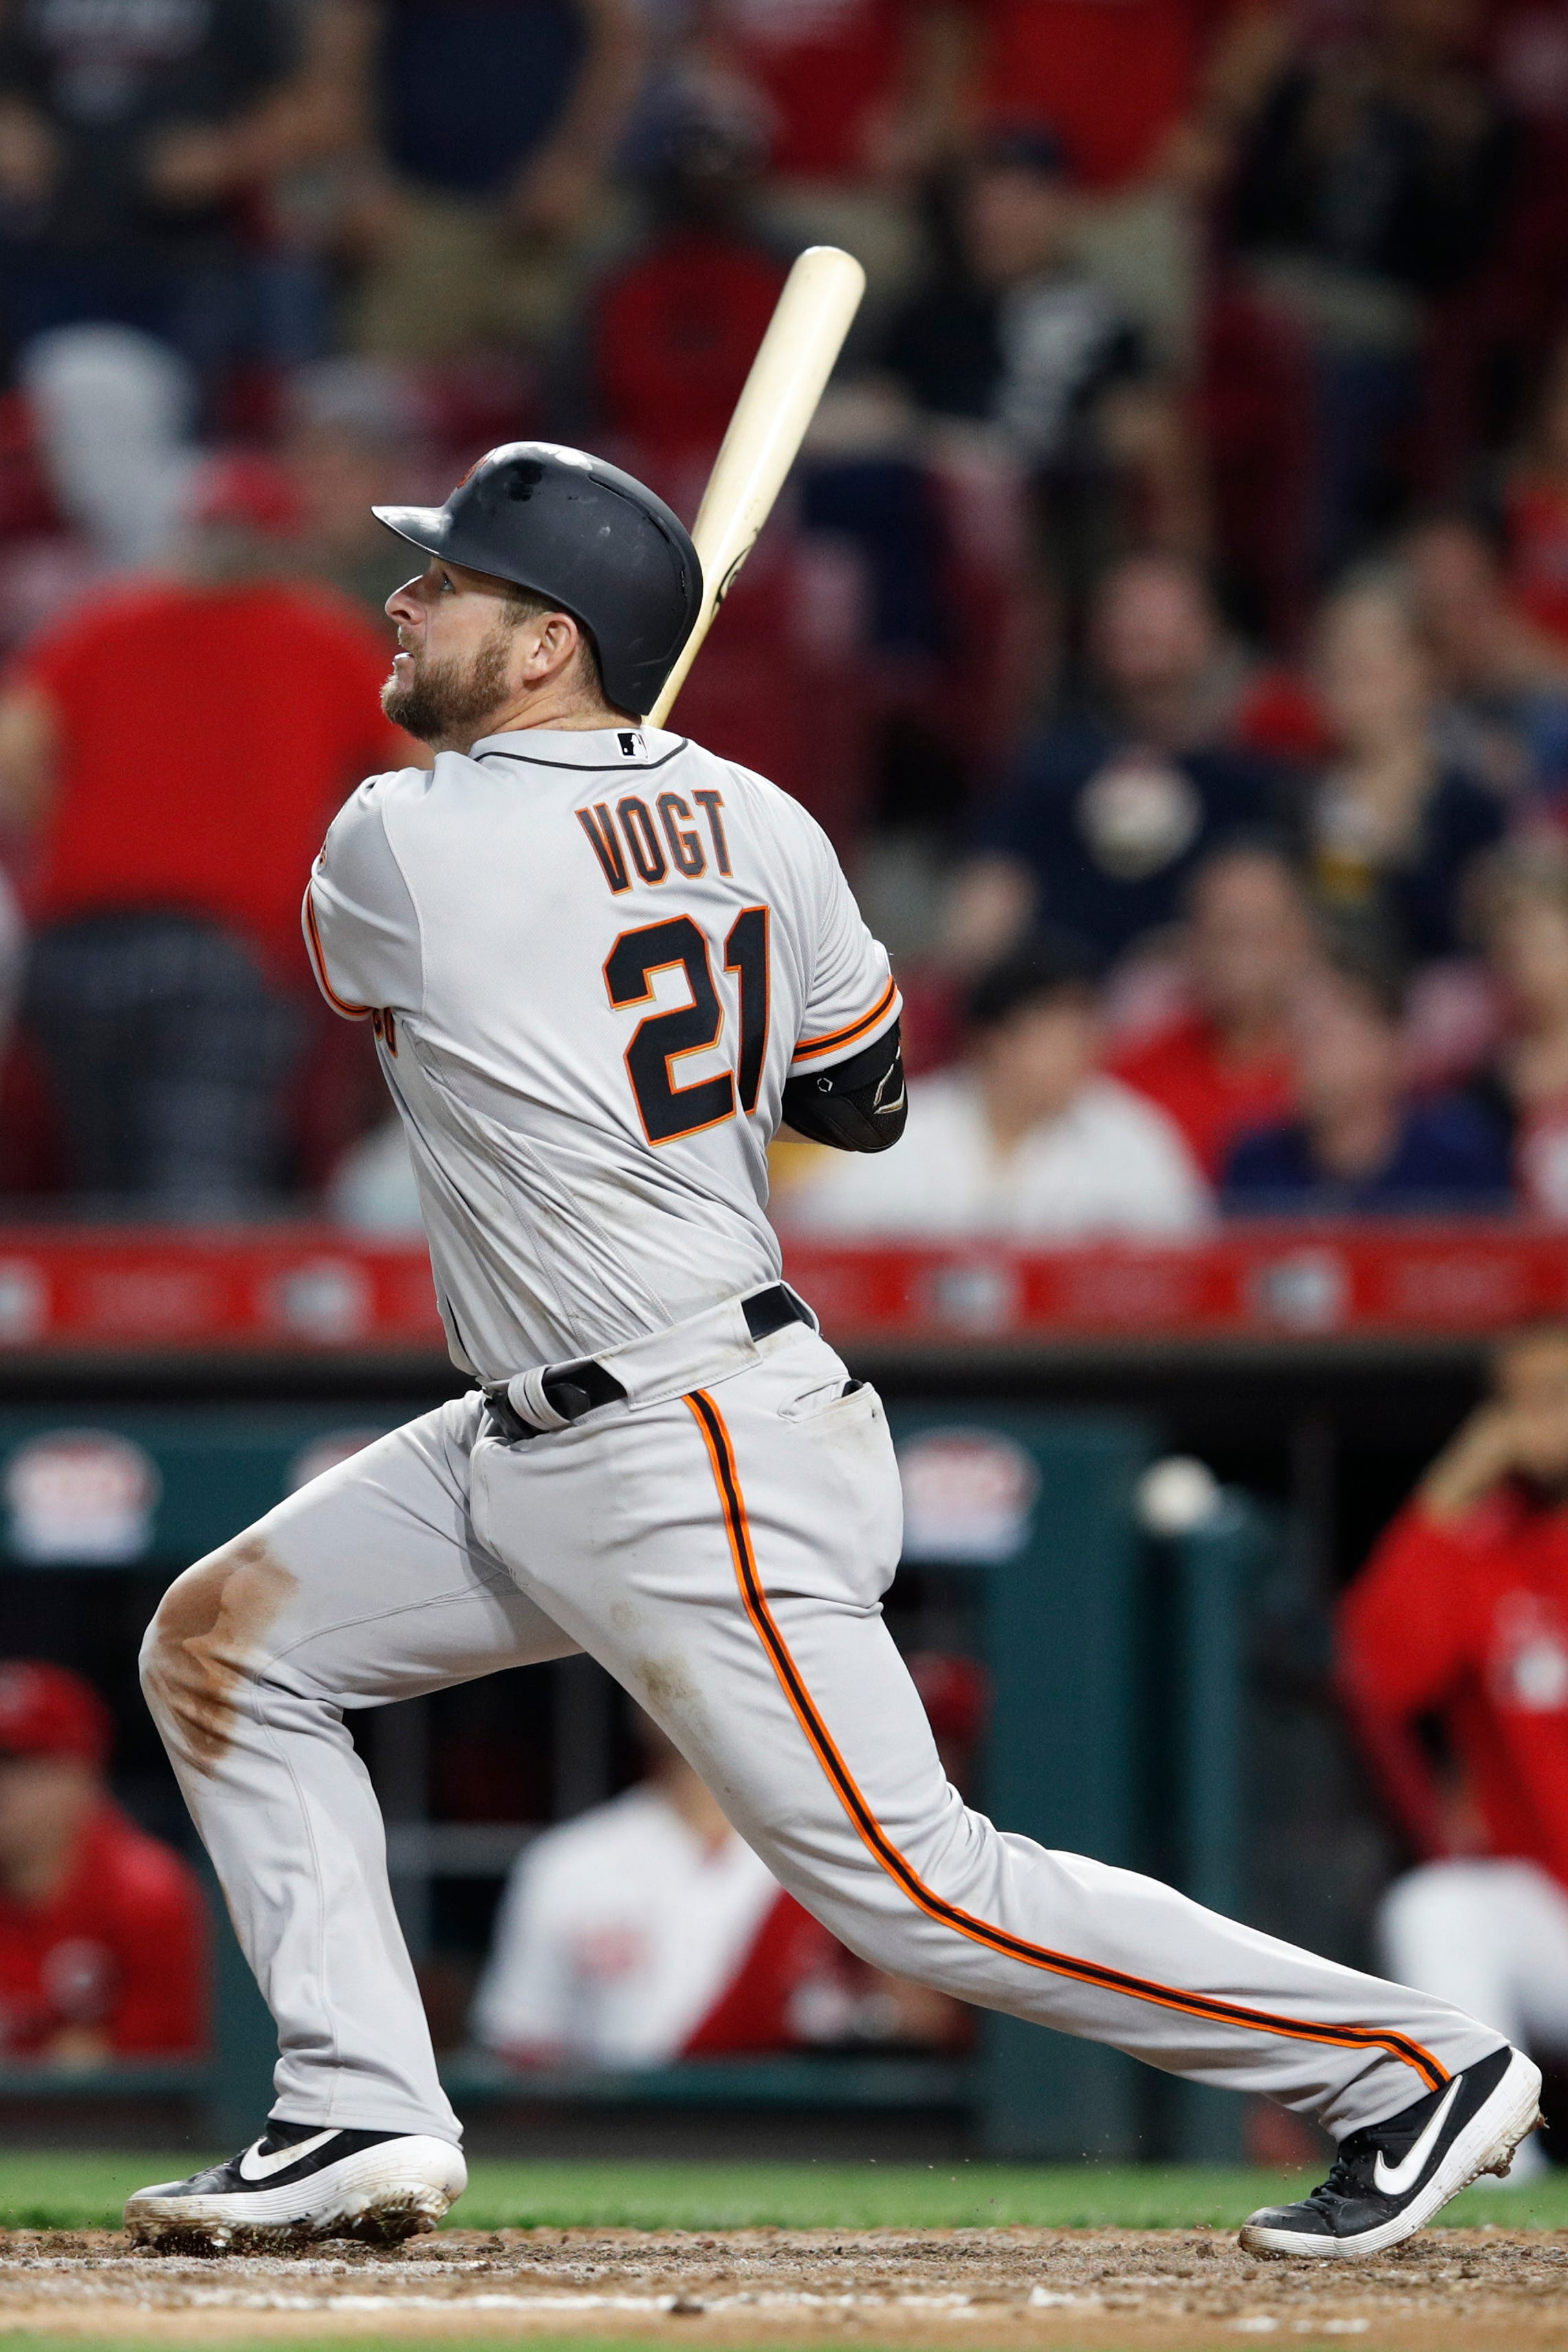 f66651b49 After more than a year away from the Major Leagues, former Brewers catcher  Stephen Vogt hit a game-tying homer in his first game back as the Giants  rallied ...